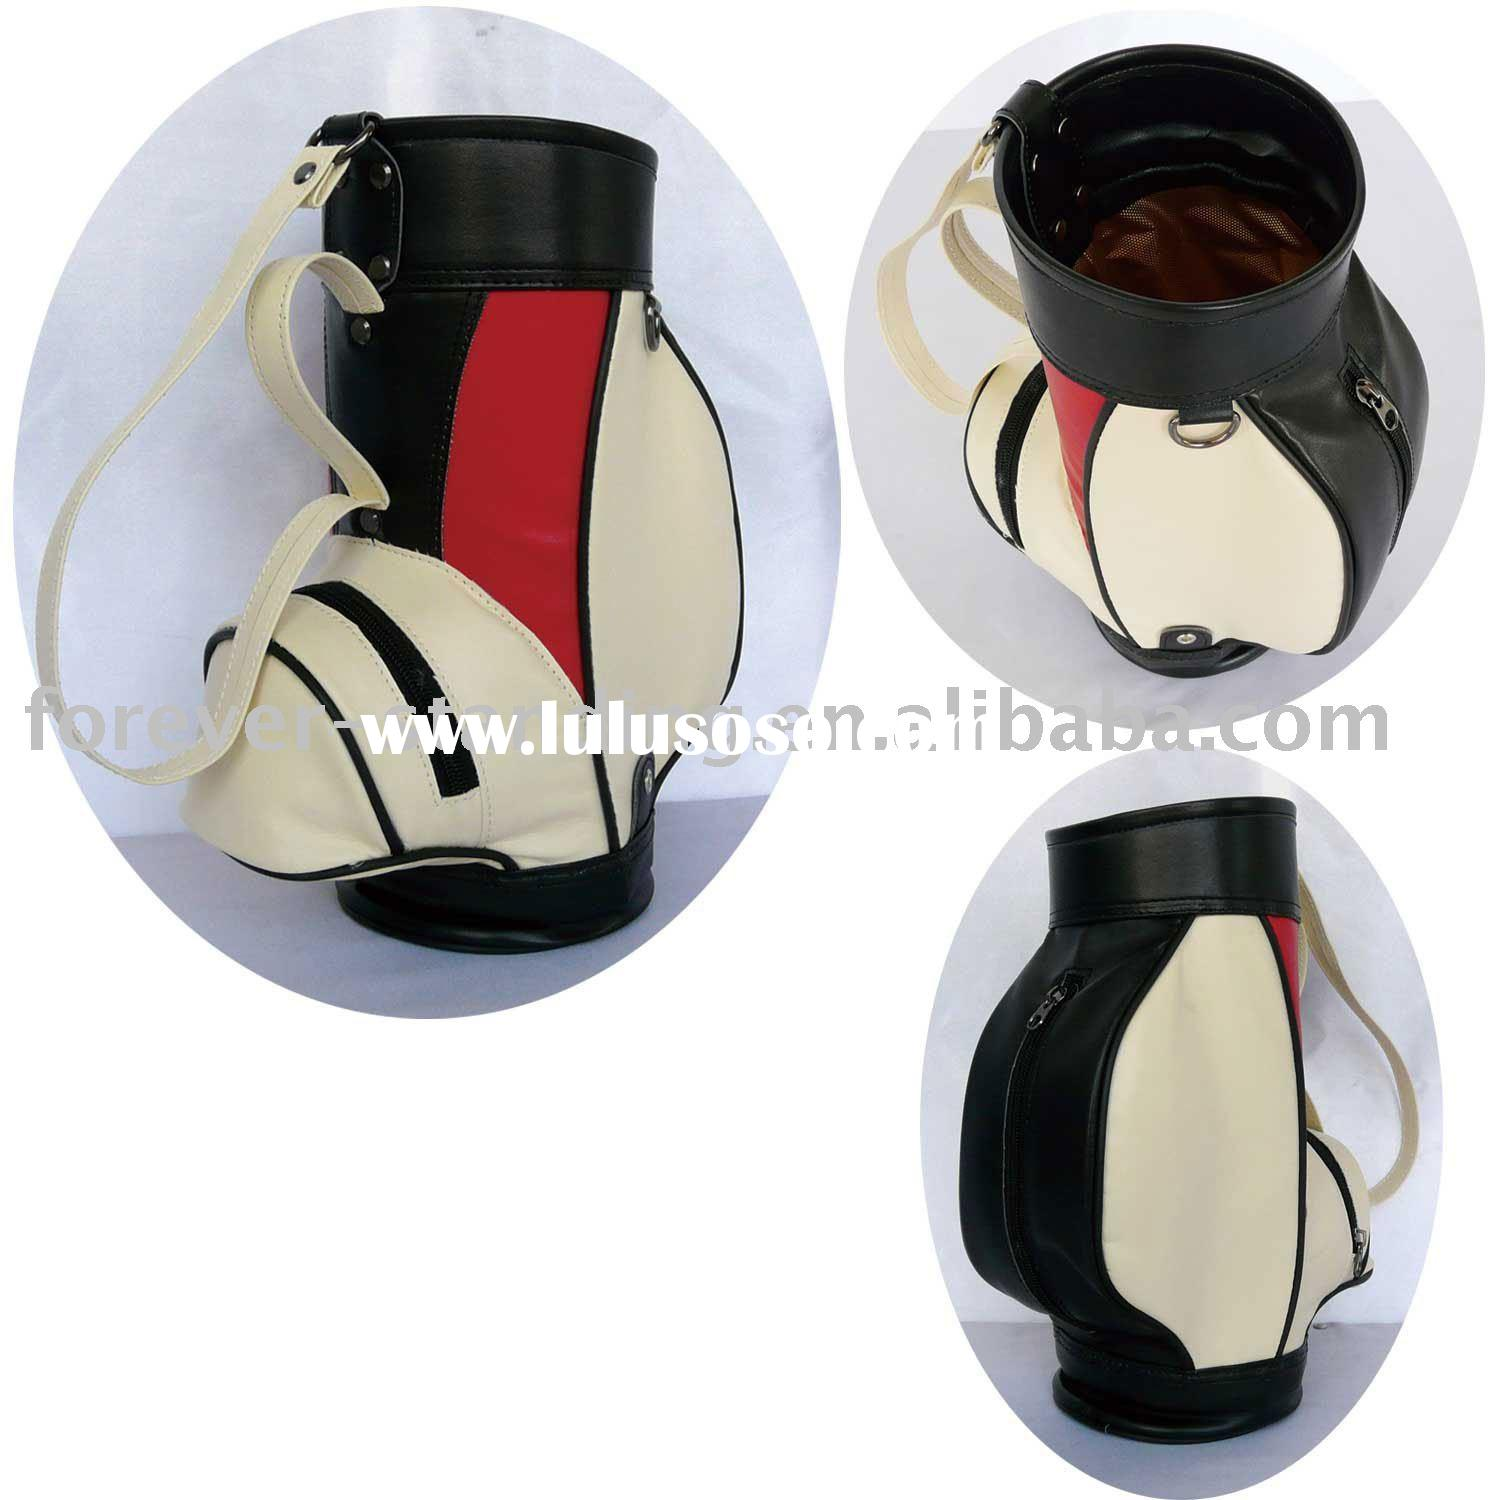 China factory sell Golf bag shaped Wine tote